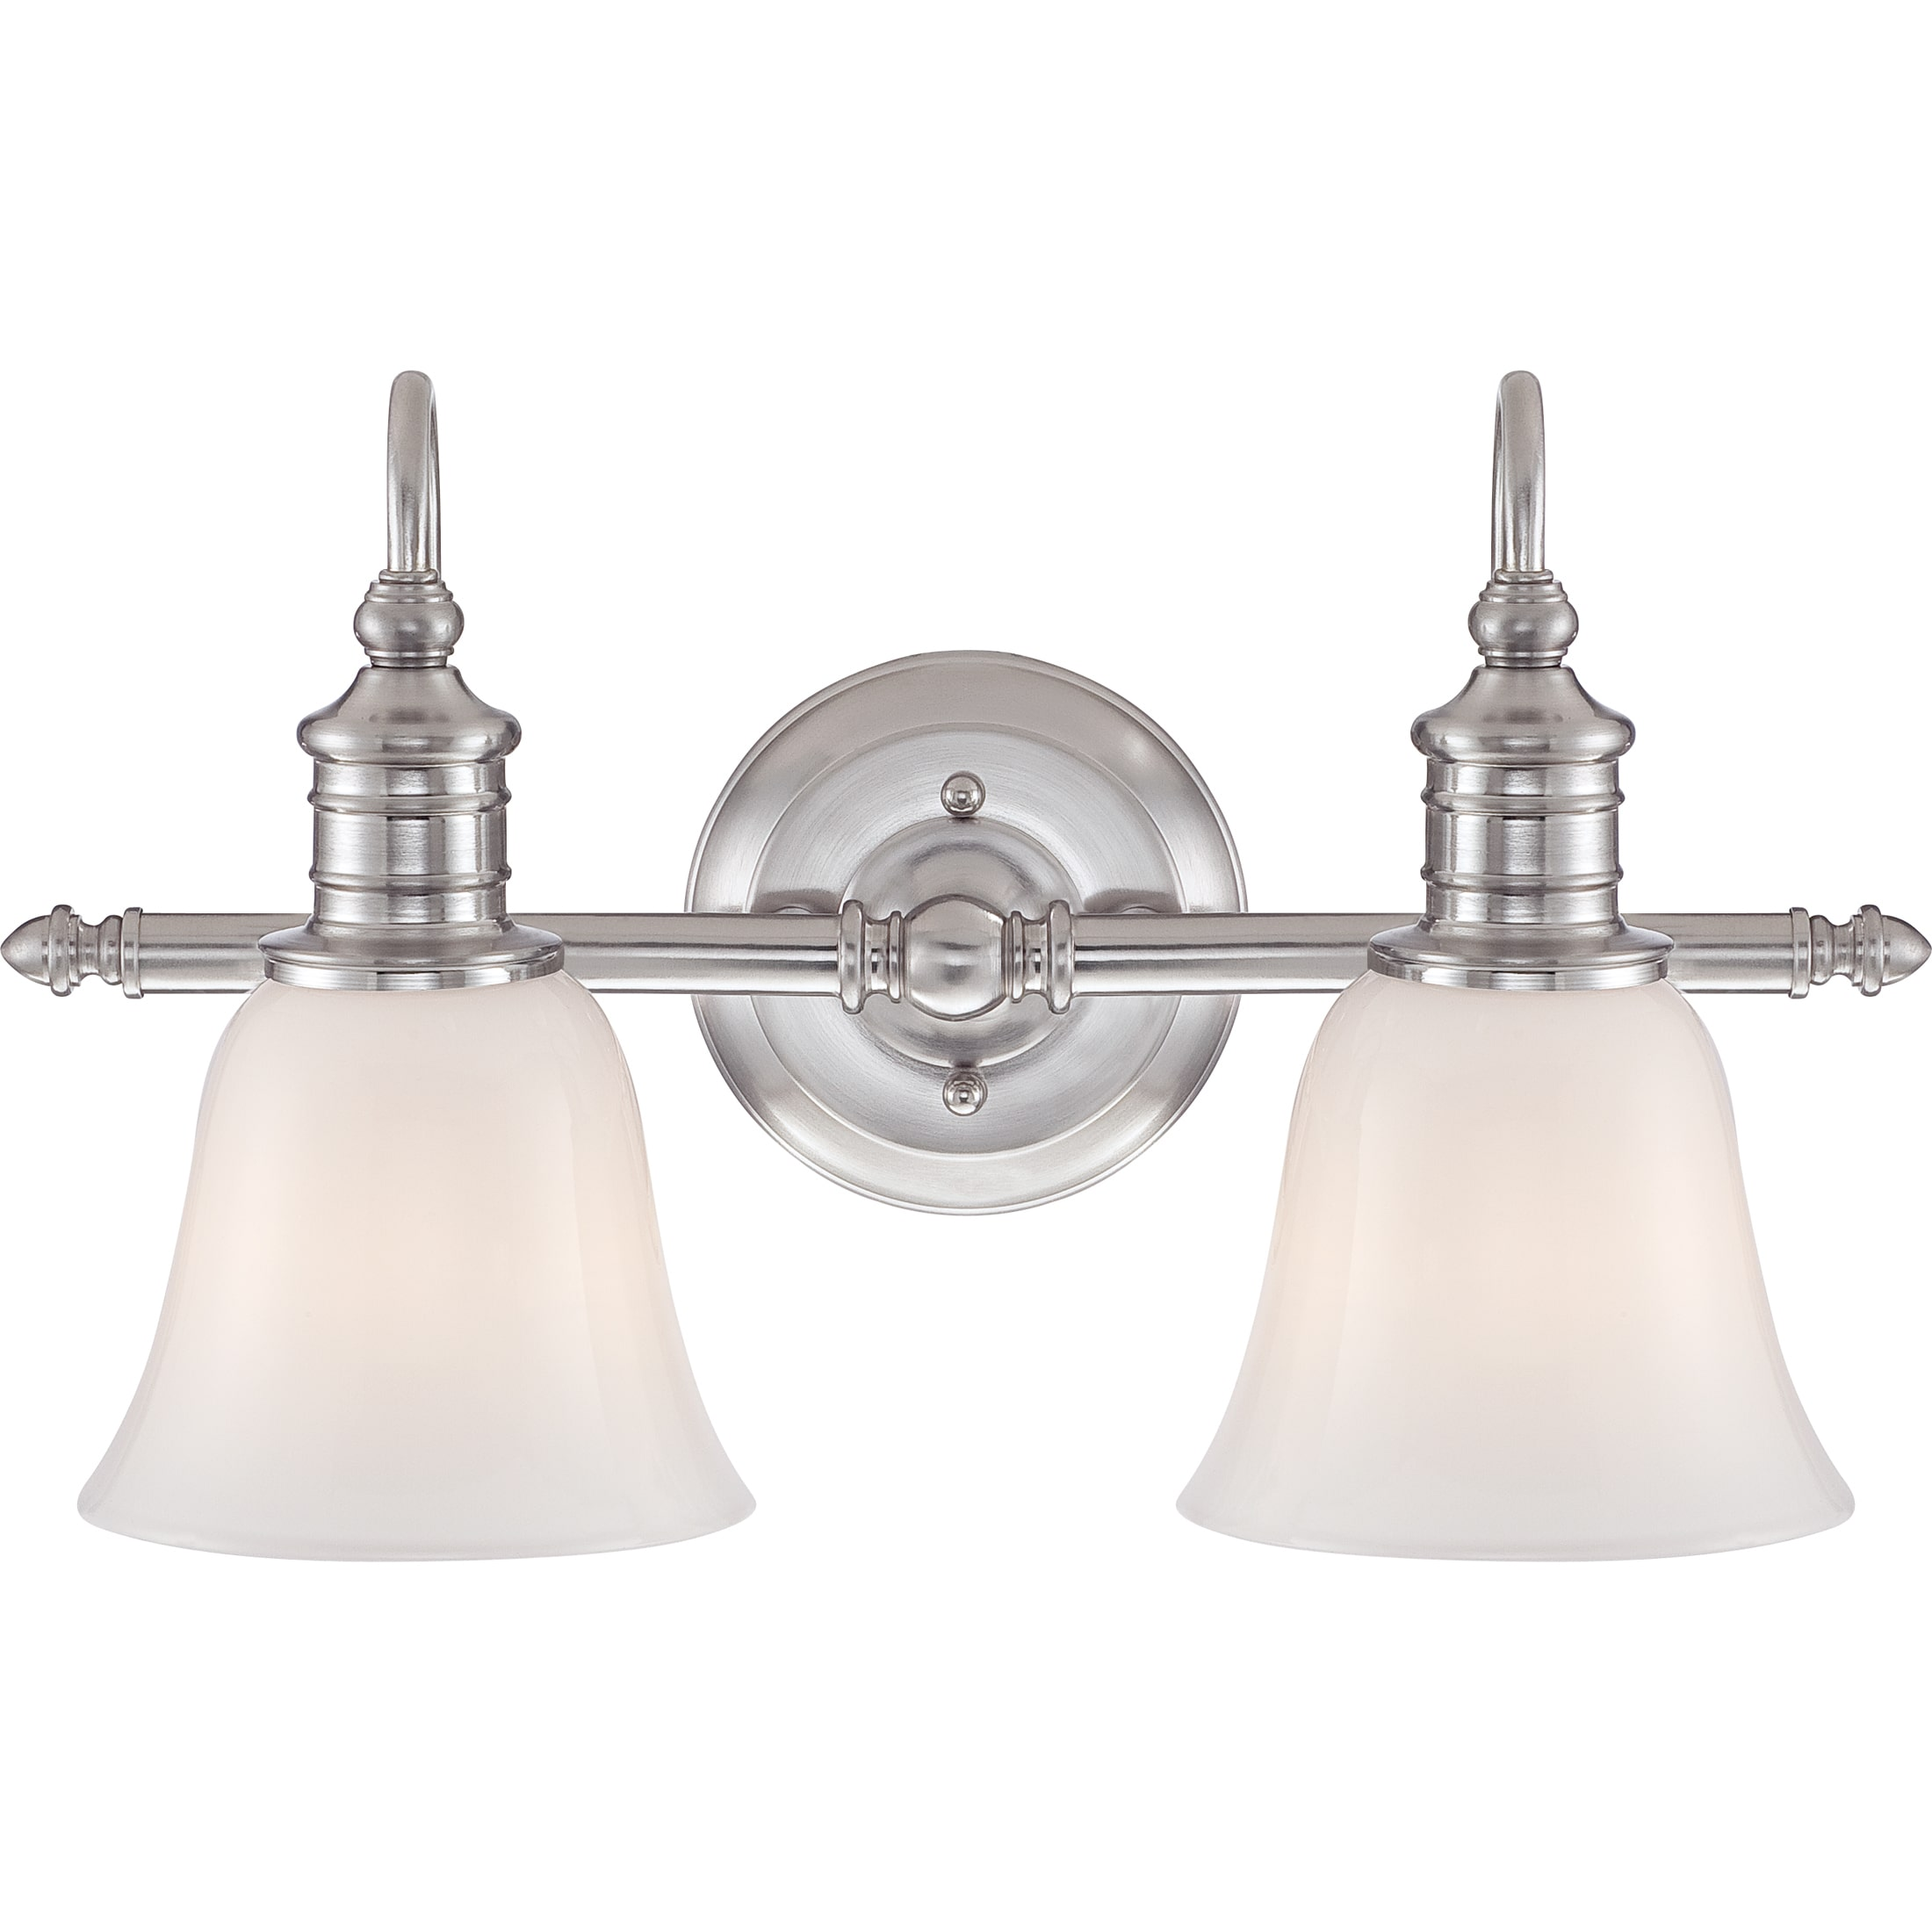 Quoizel Broadgate Brushed Nickel 2-light Bath Fixture by Overstock